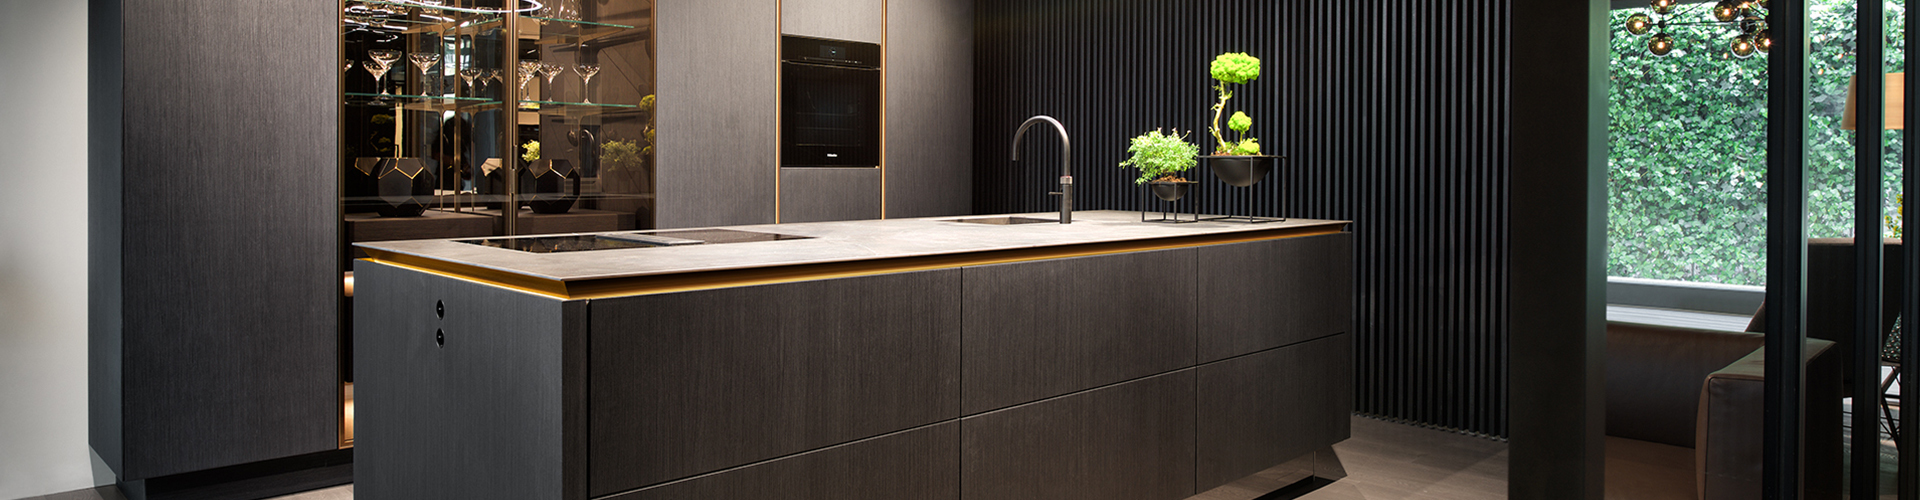 Nu in de maak: Onze SieMatic Boutique